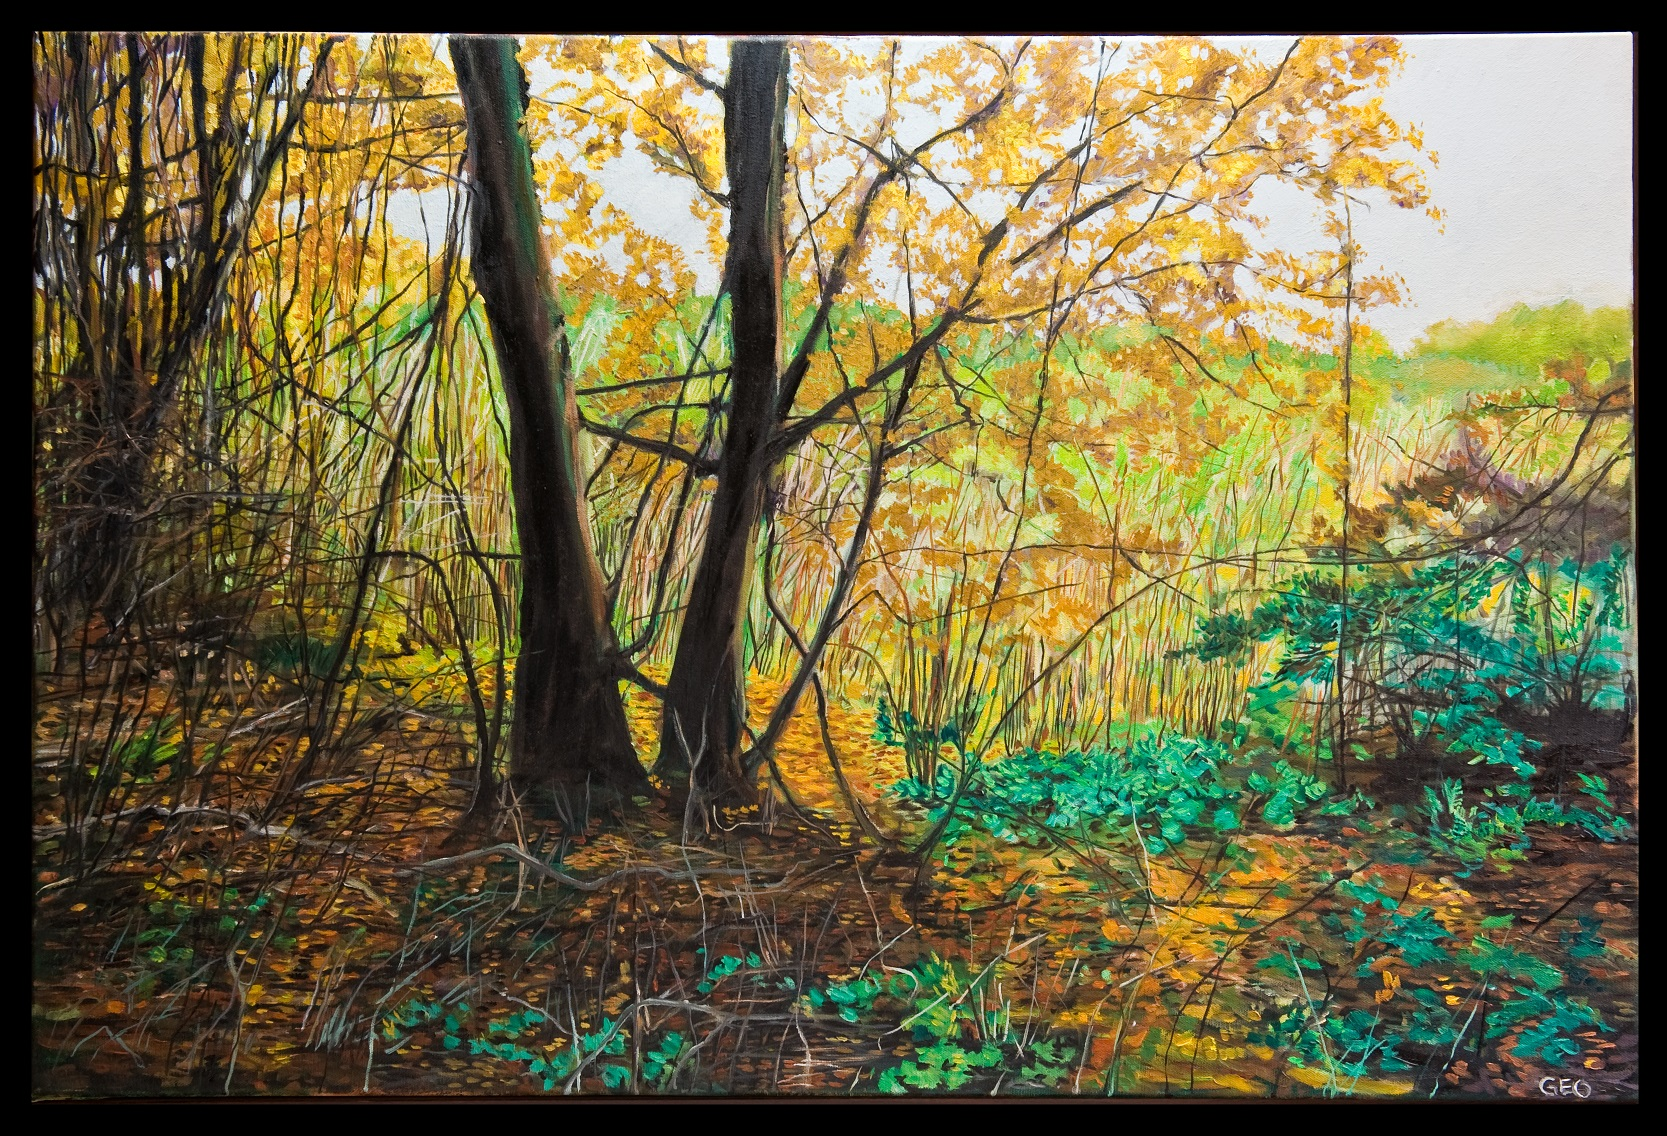 Edge of the Woods 24x36 oil on canvas